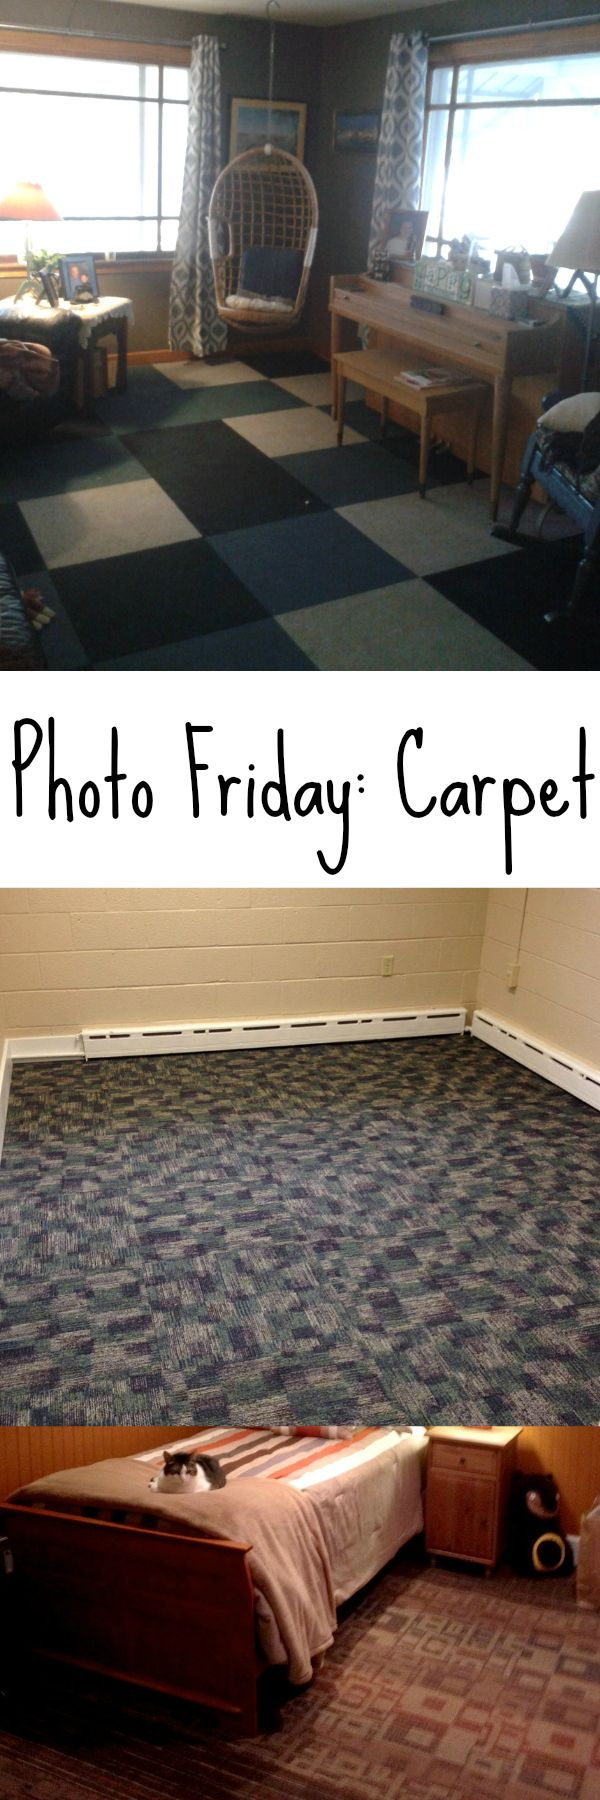 Harley color carpet tiles - Photo Friday 5 Carpet Tilesevery Daystencils